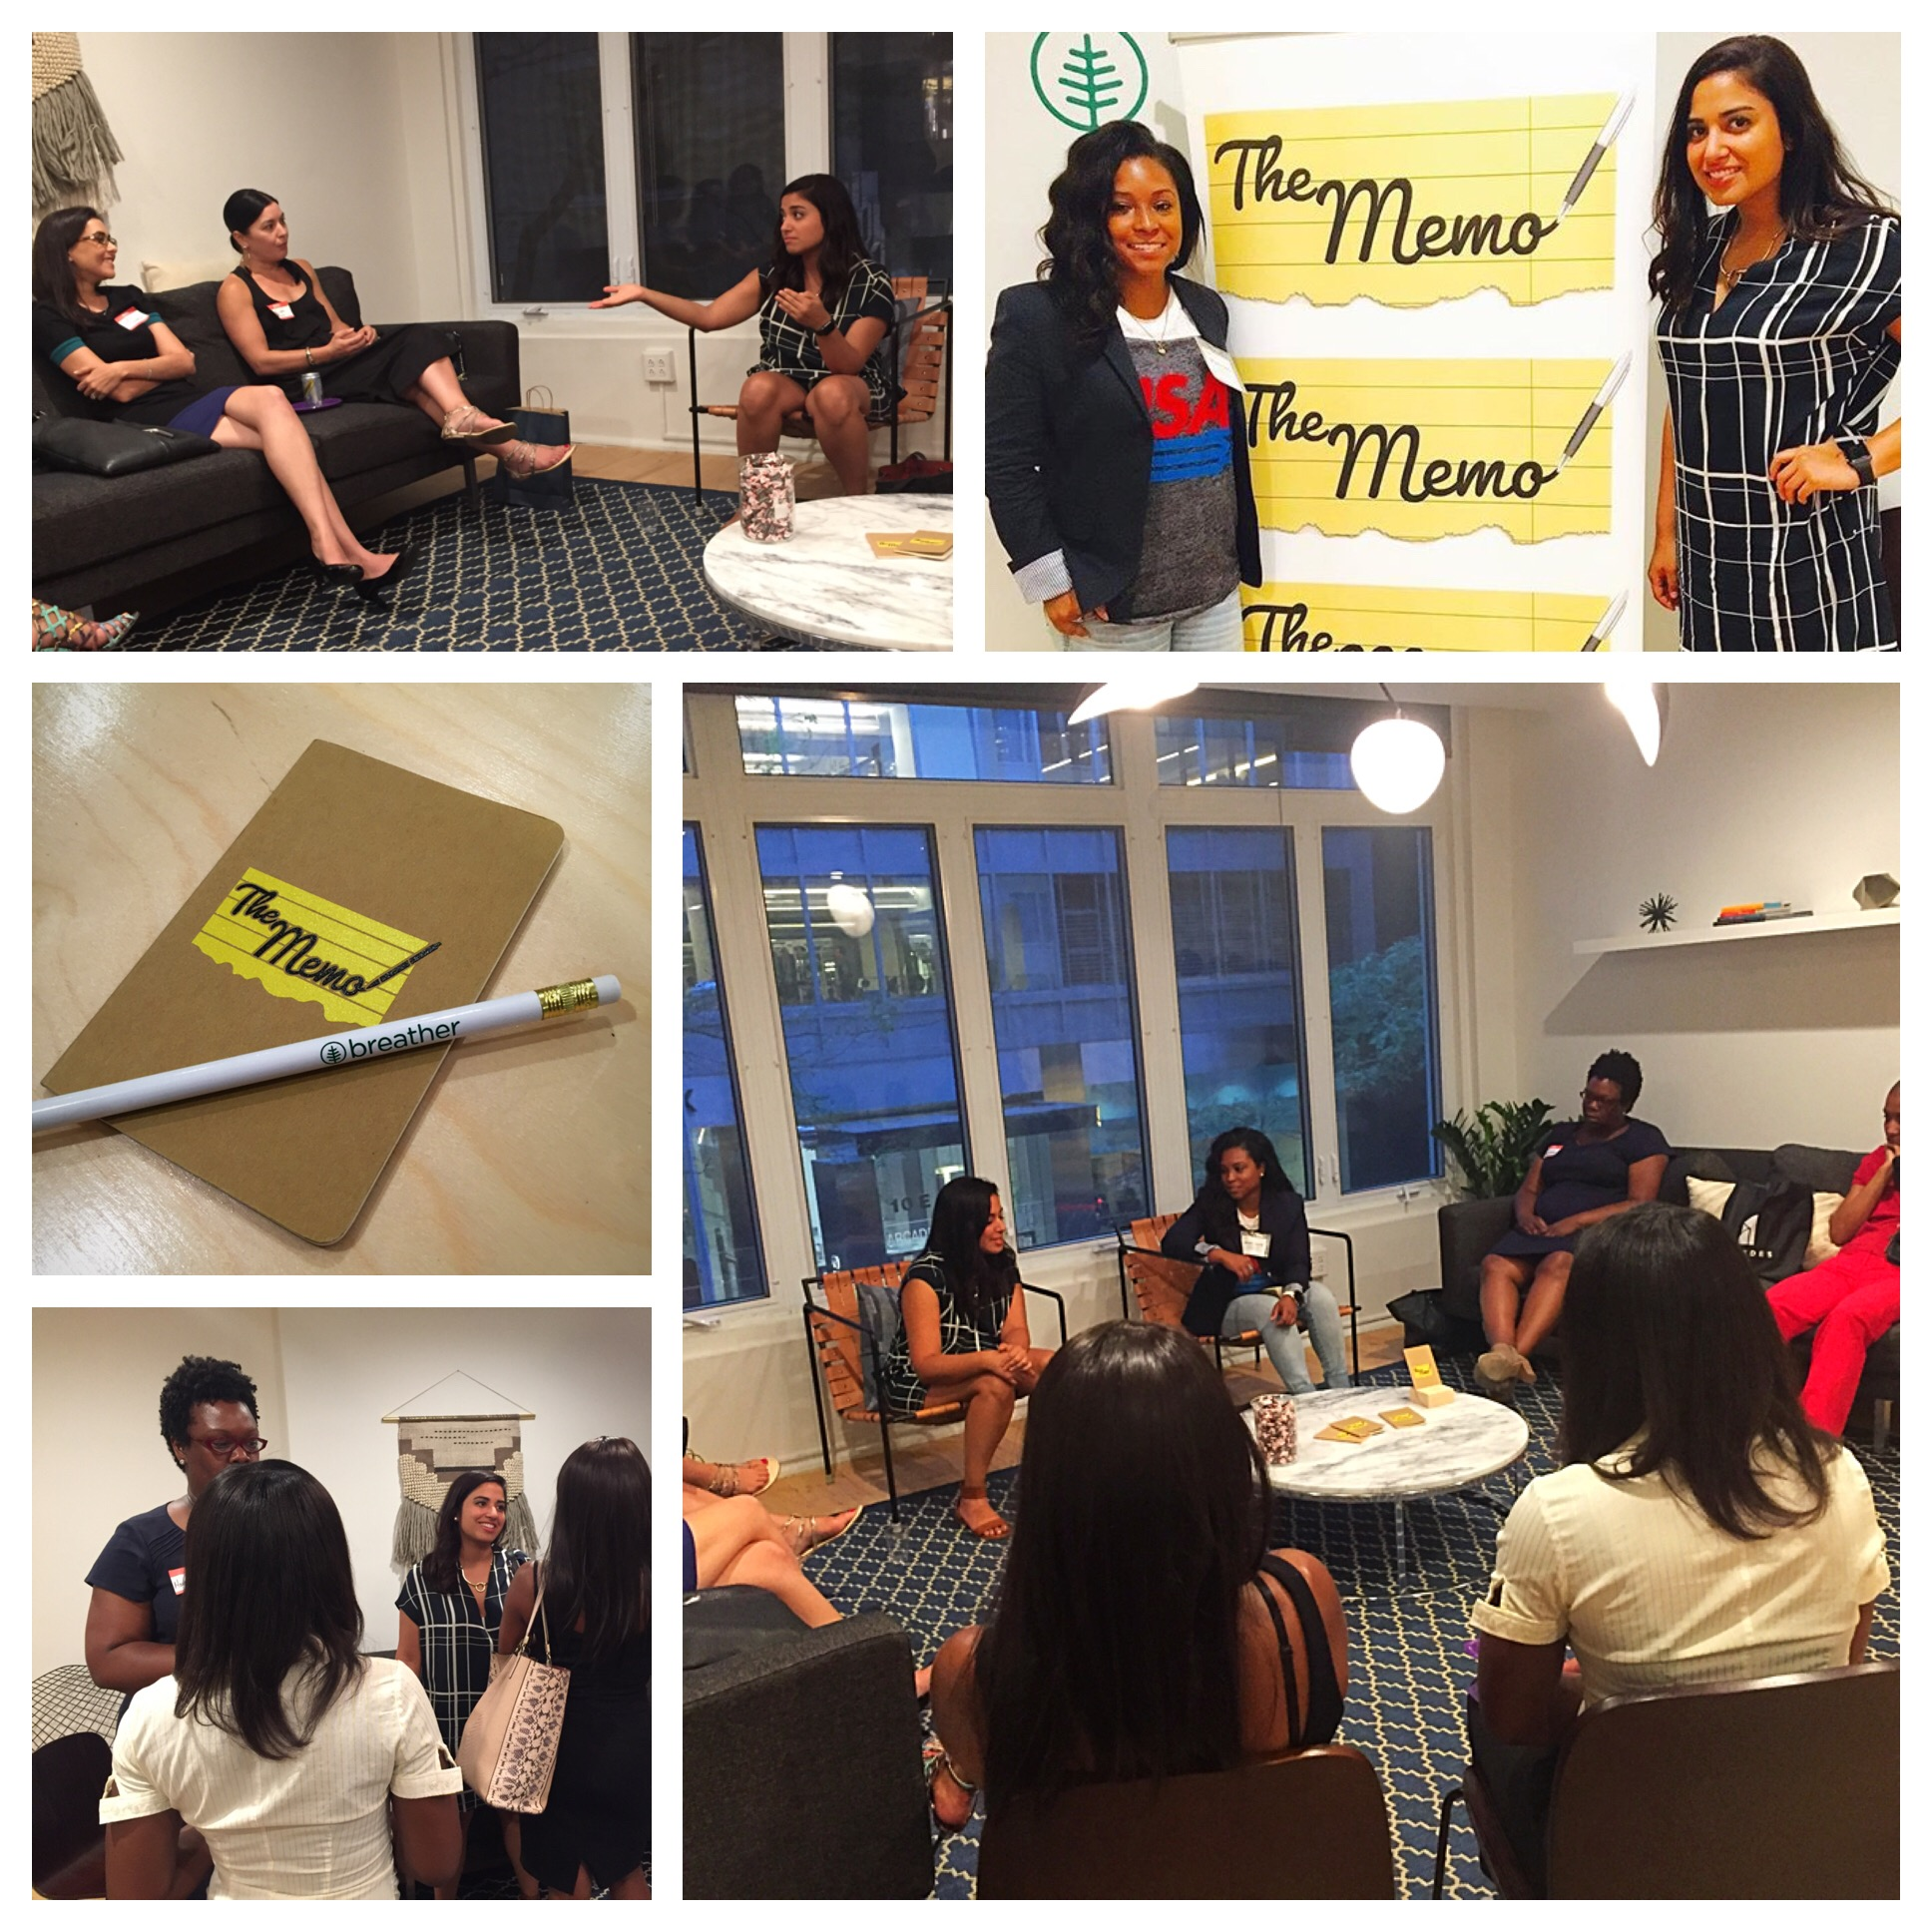 Images from After 6: Career Conversations with Tanya Menendez